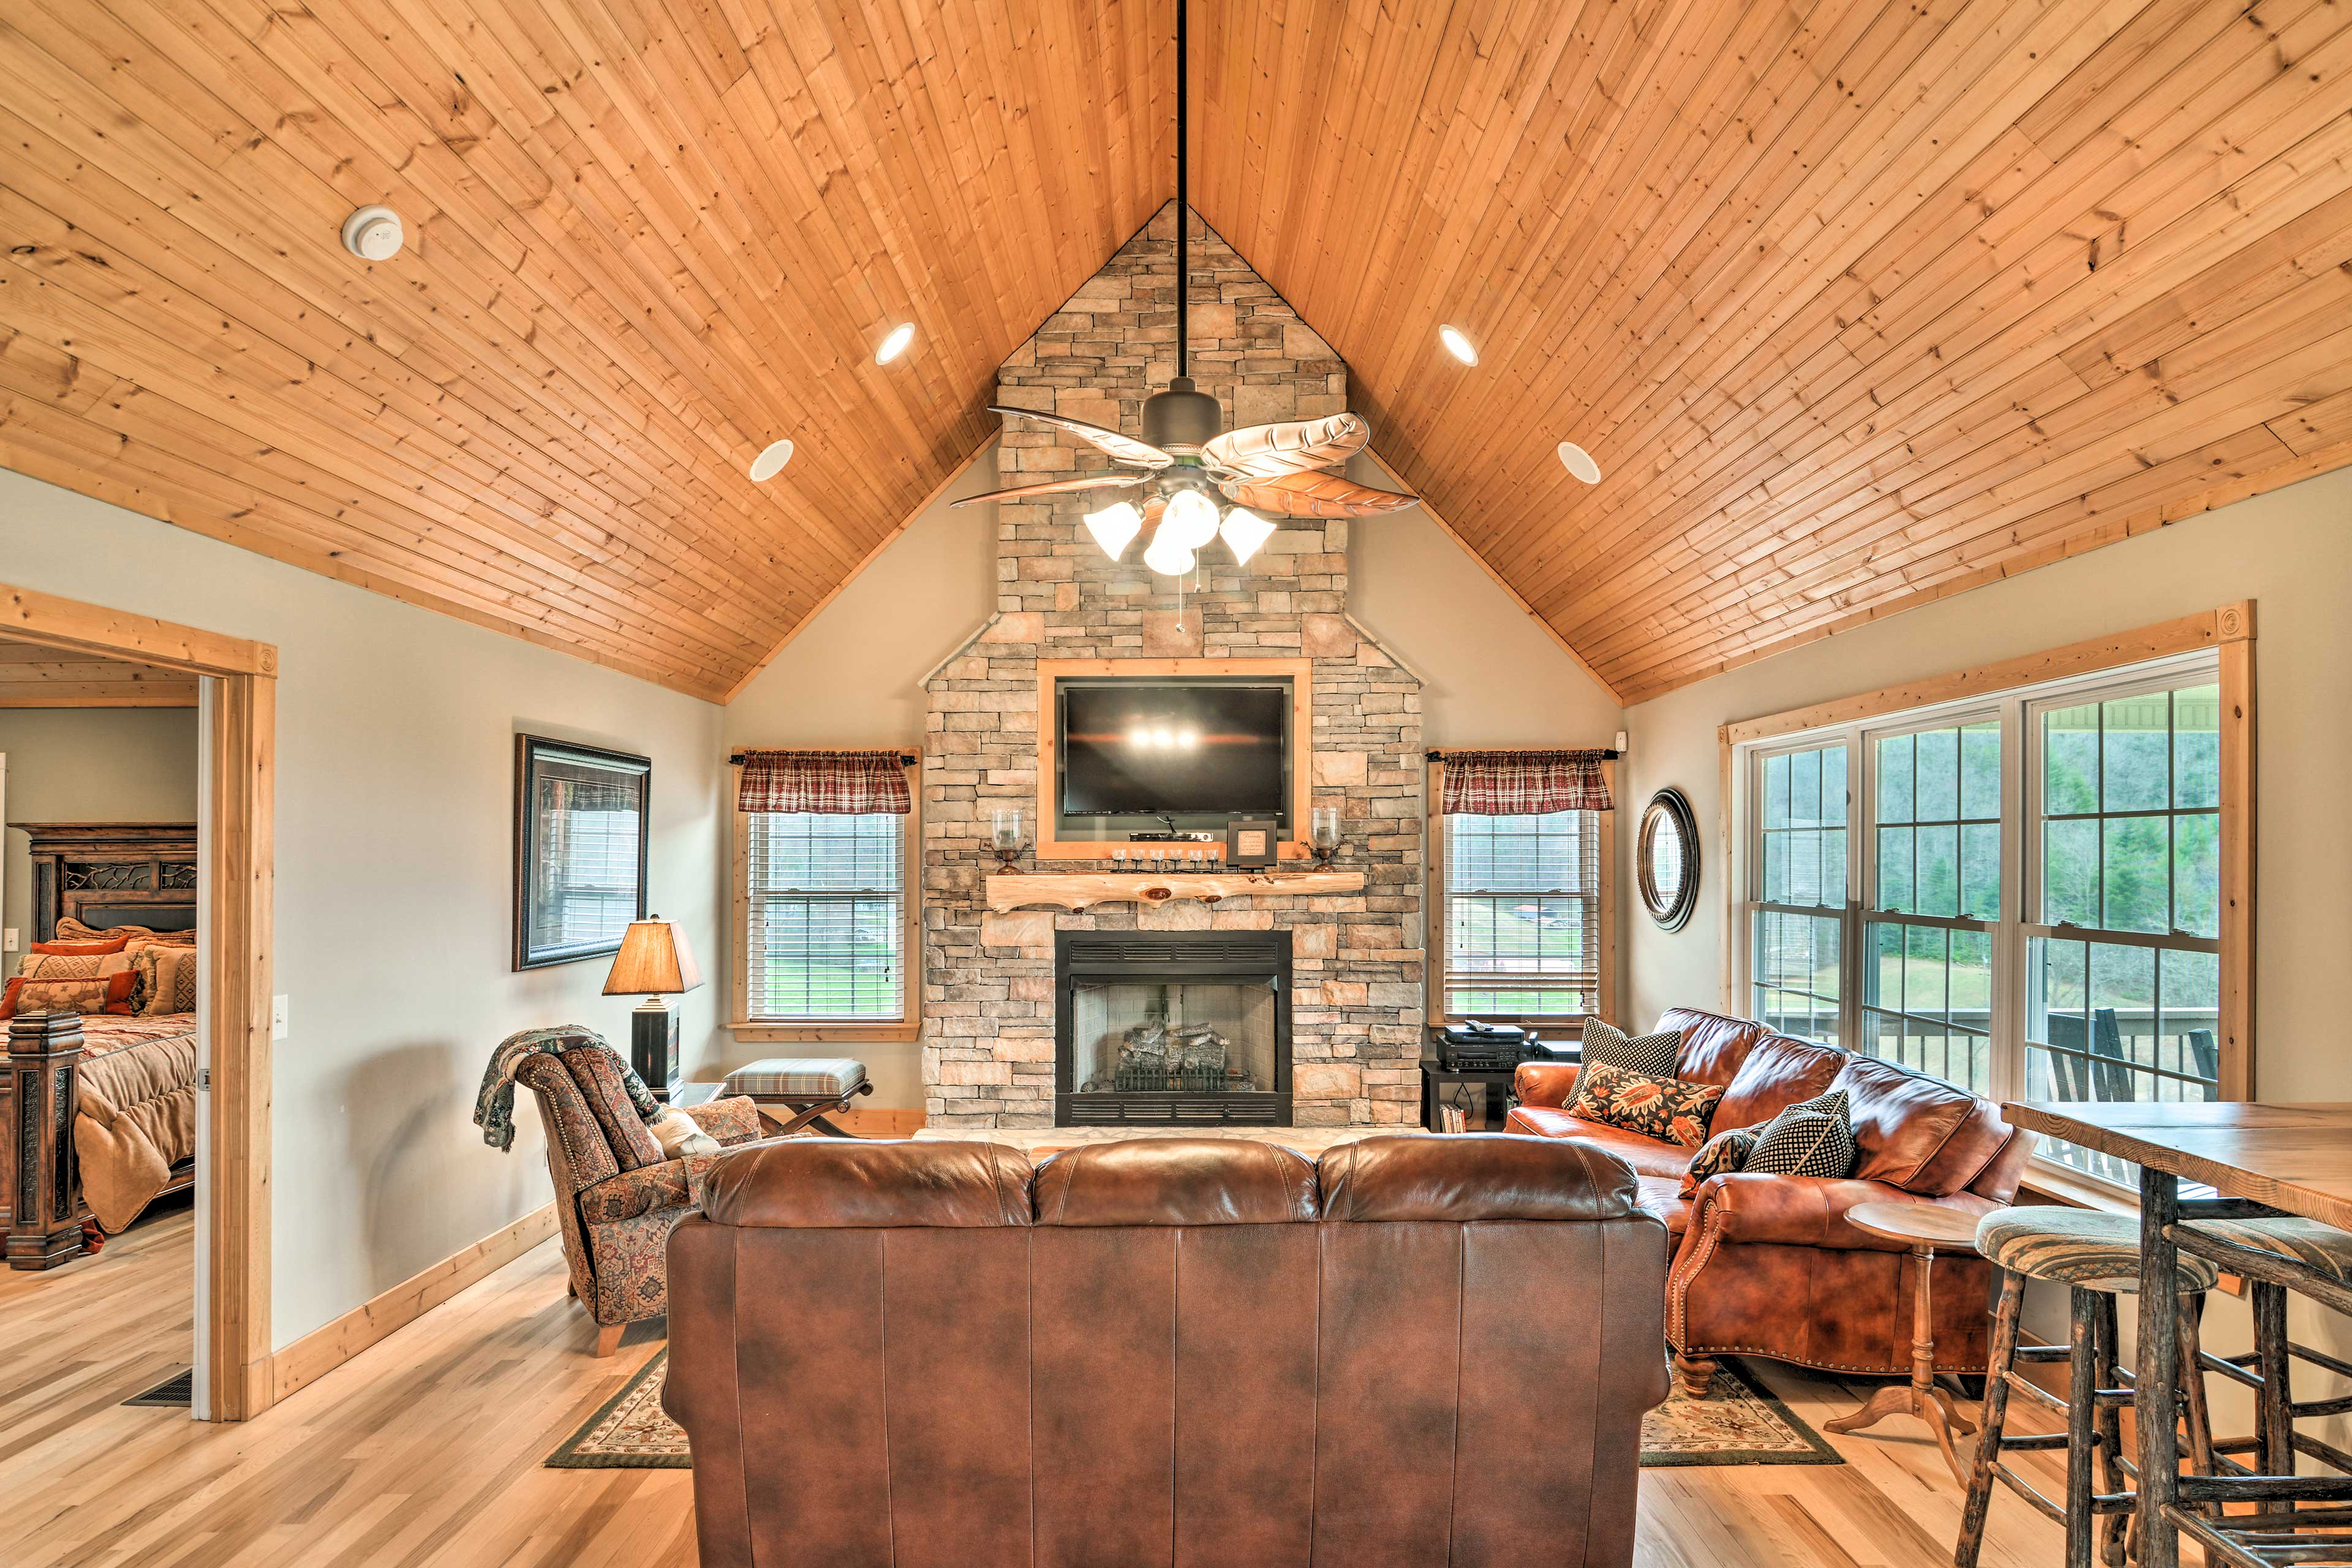 The gorgeous living room features cathedral ceilings & tall fireplace.